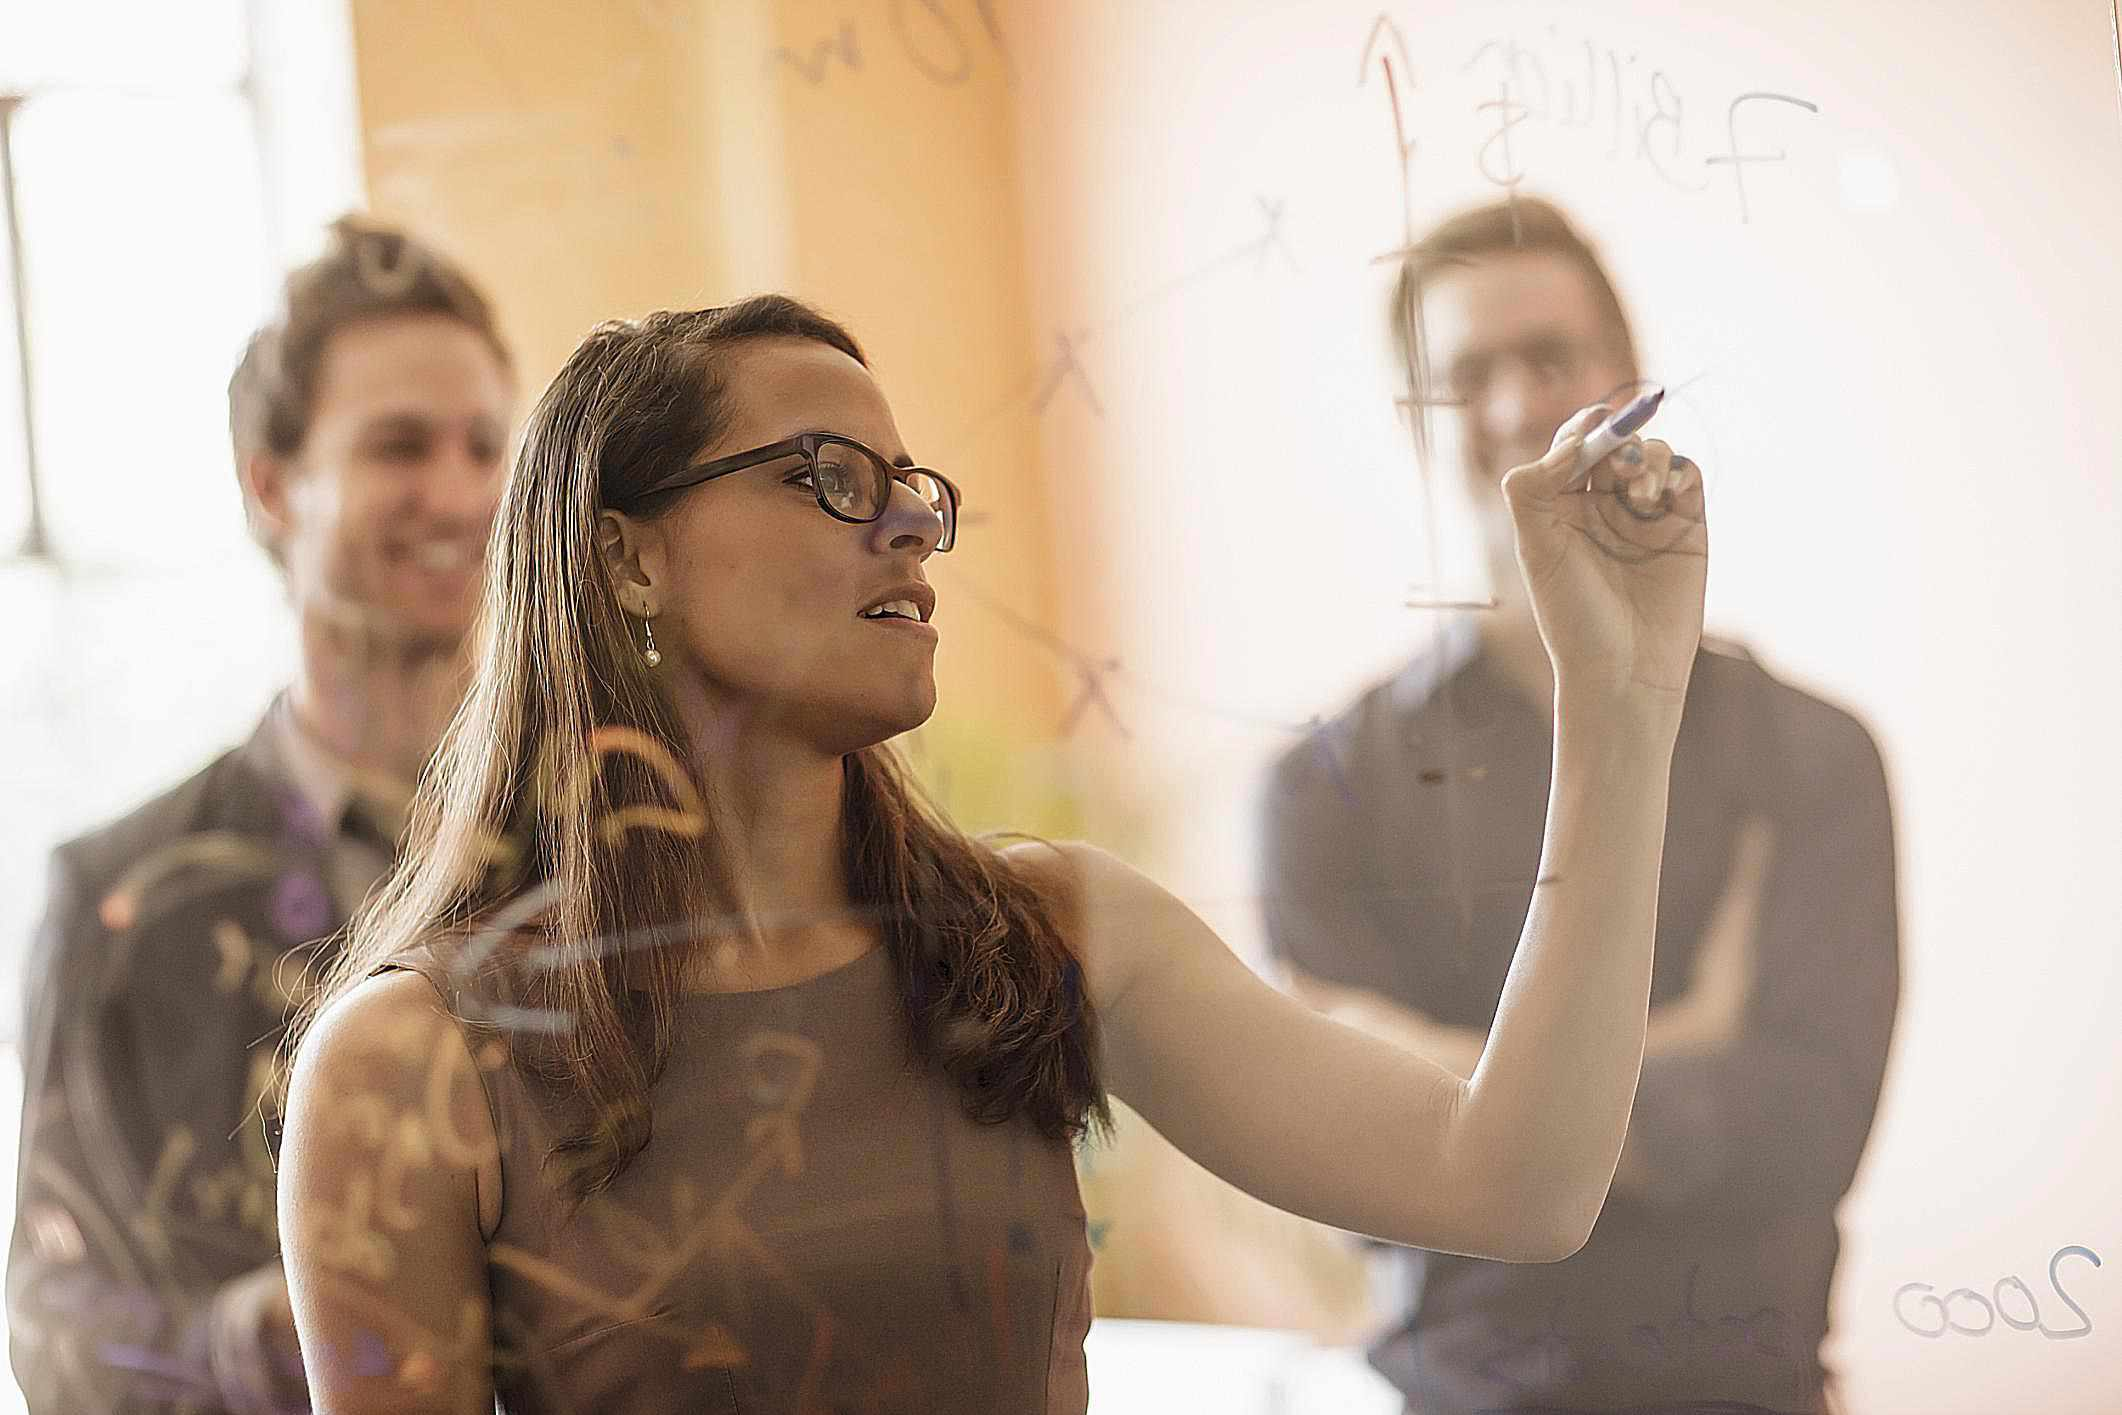 Businesswoman writing on wall while coworkers watch